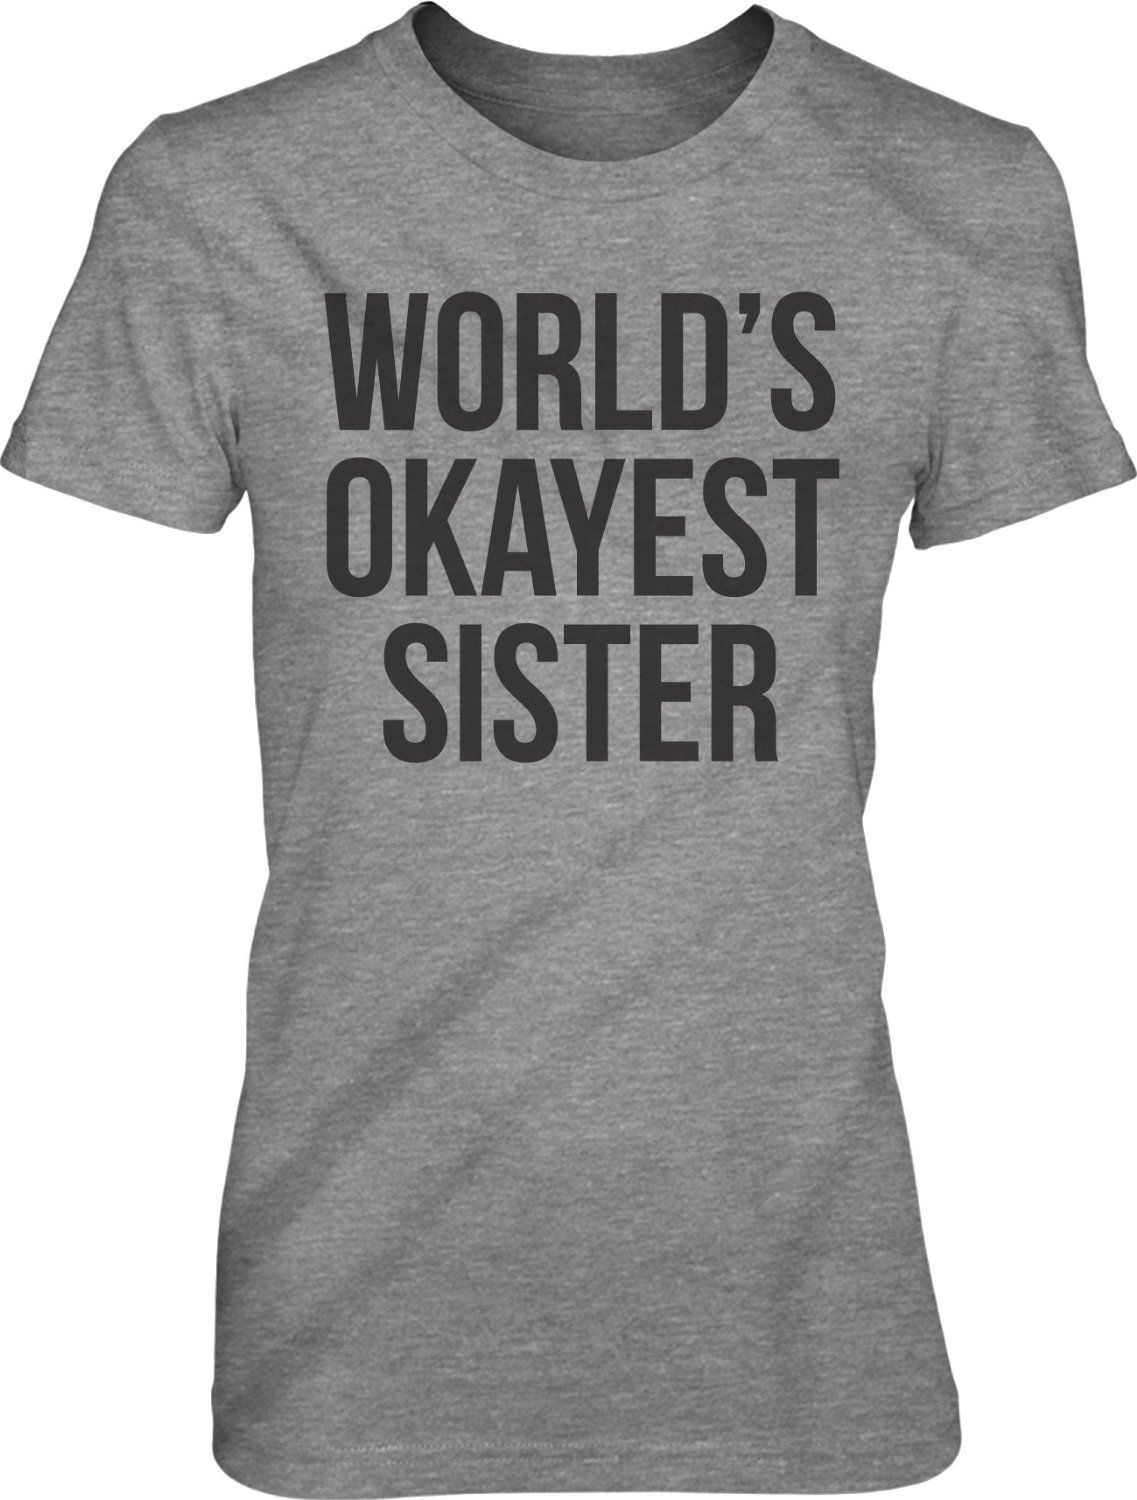 e27adbe19 Women's World's Okayest Sister T Shirt funny sisters shirt siblings tee